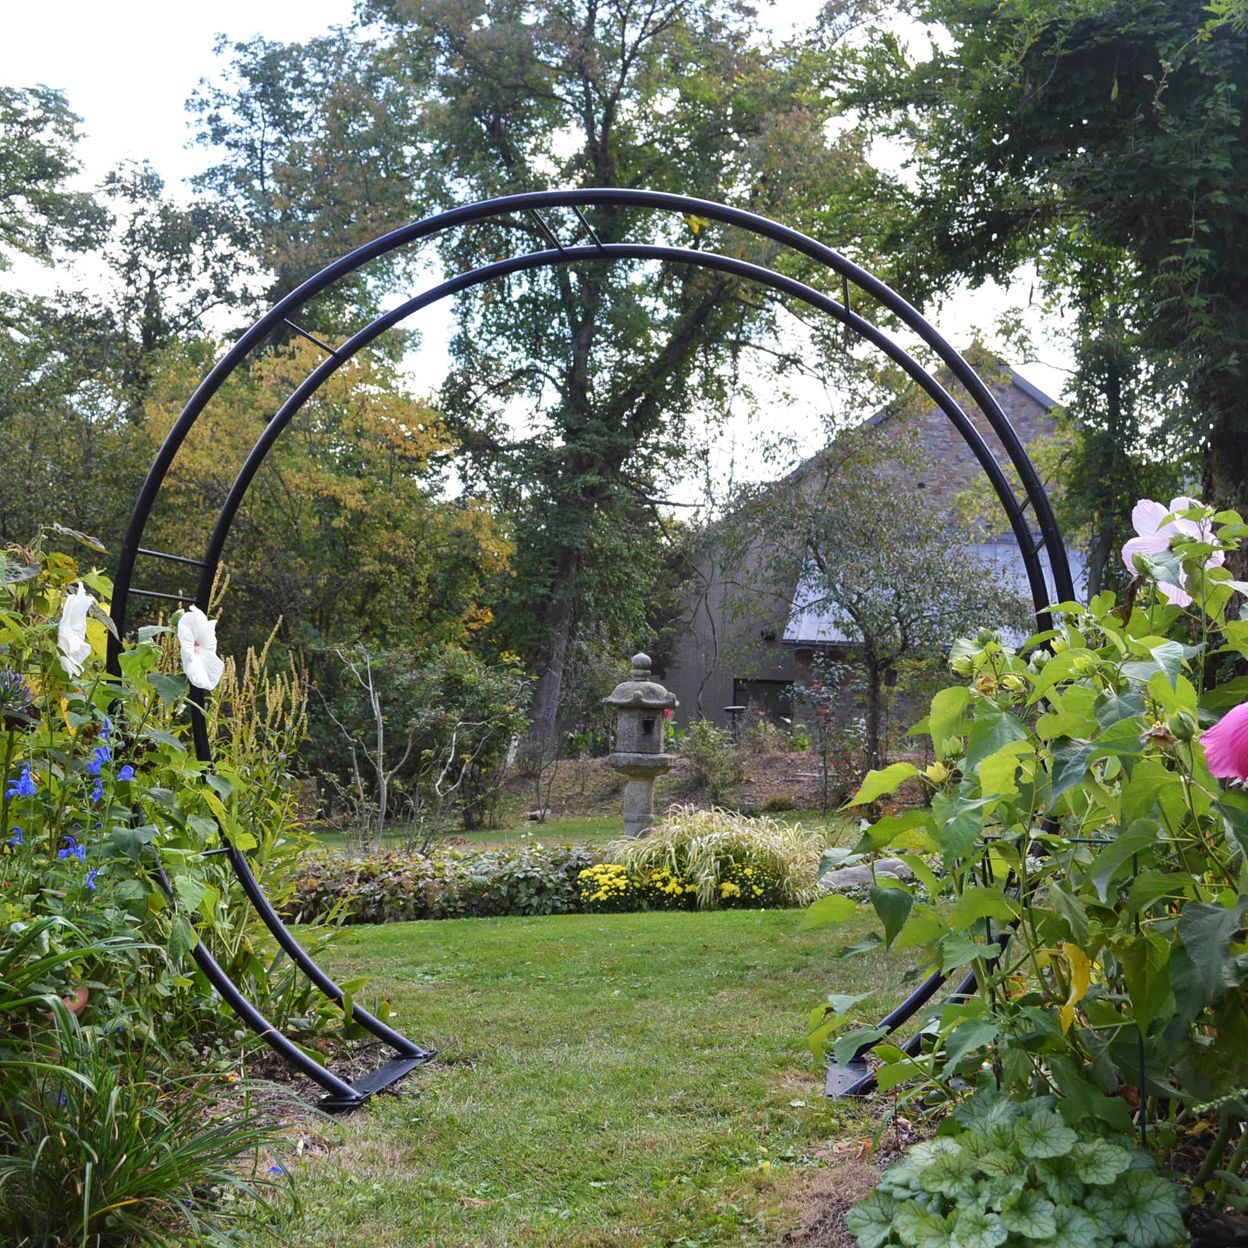 Kinsman co 108 moon gate 108 h x 120 w garden ideas for Moon garden designs